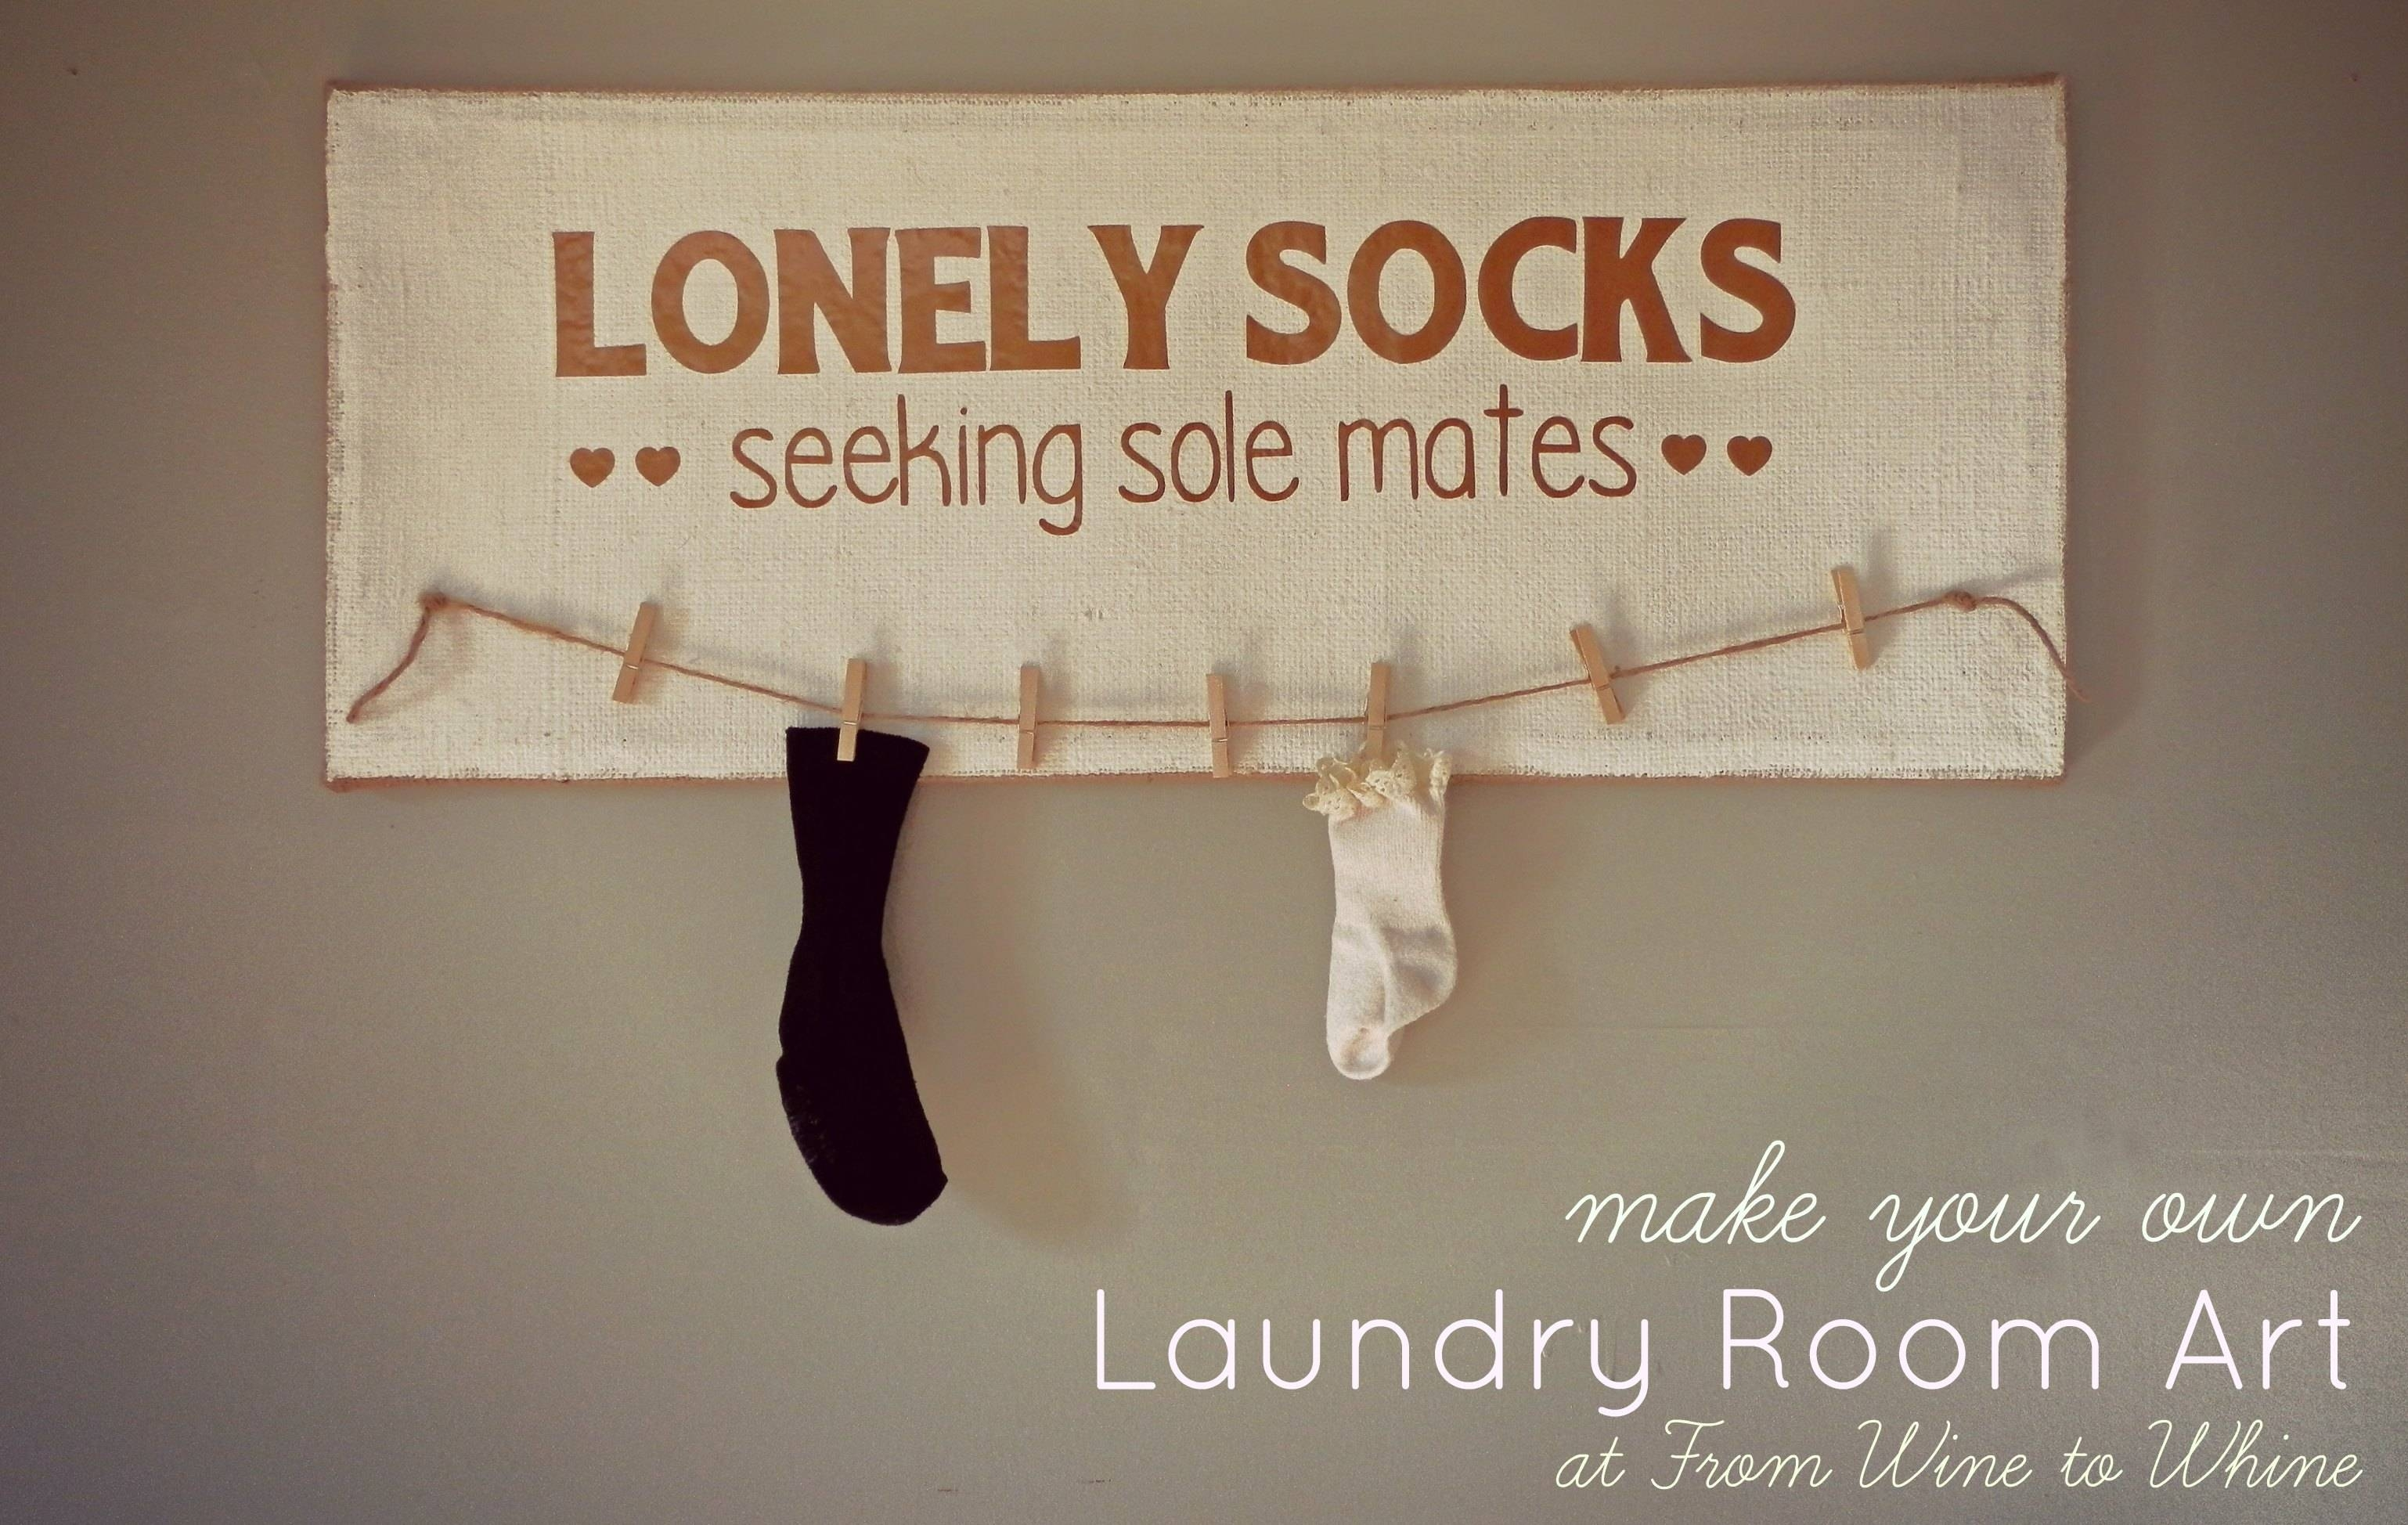 Wall Art For Laundry Room – Creeksideyarns With Regard To Most Current Laundry Room Wall Art Decors (View 18 of 25)